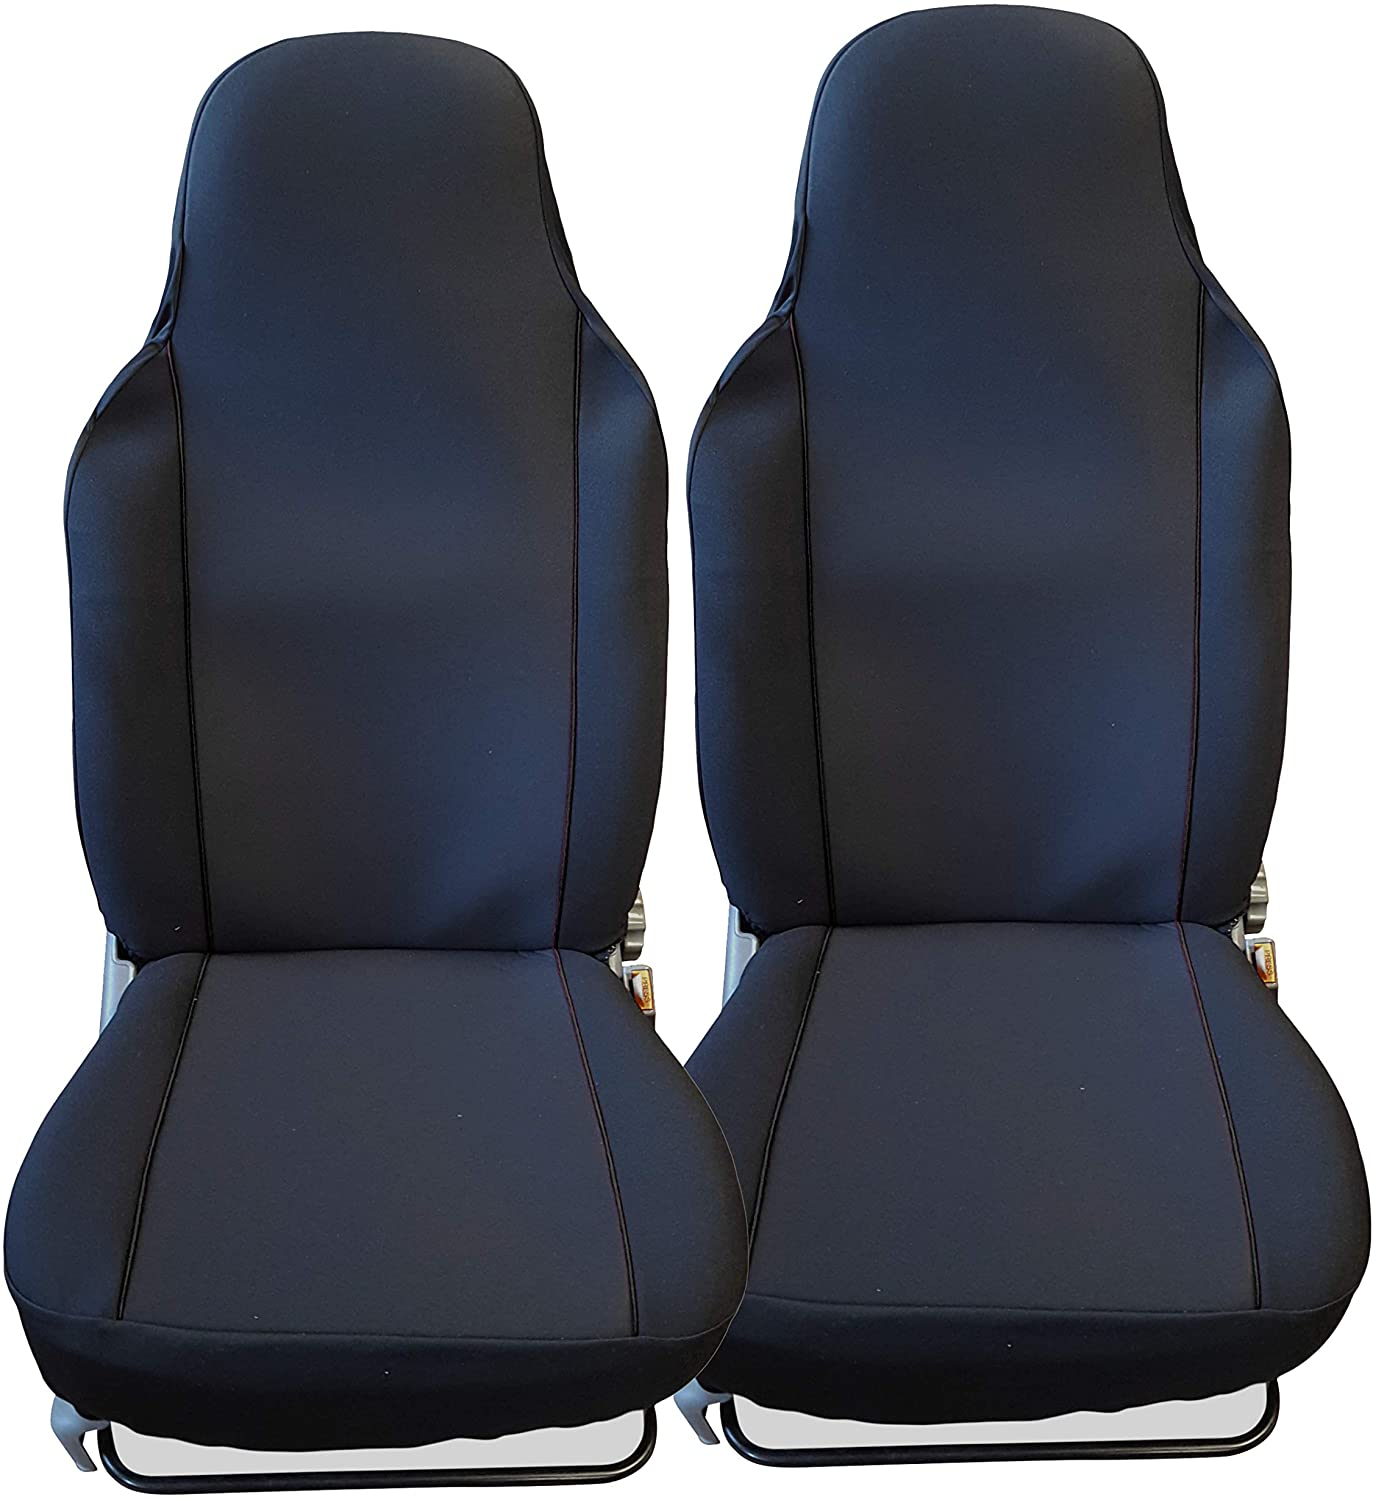 Luxury BLACK CAR SEAT COVERS PROTECTORS- 2 x Fronts